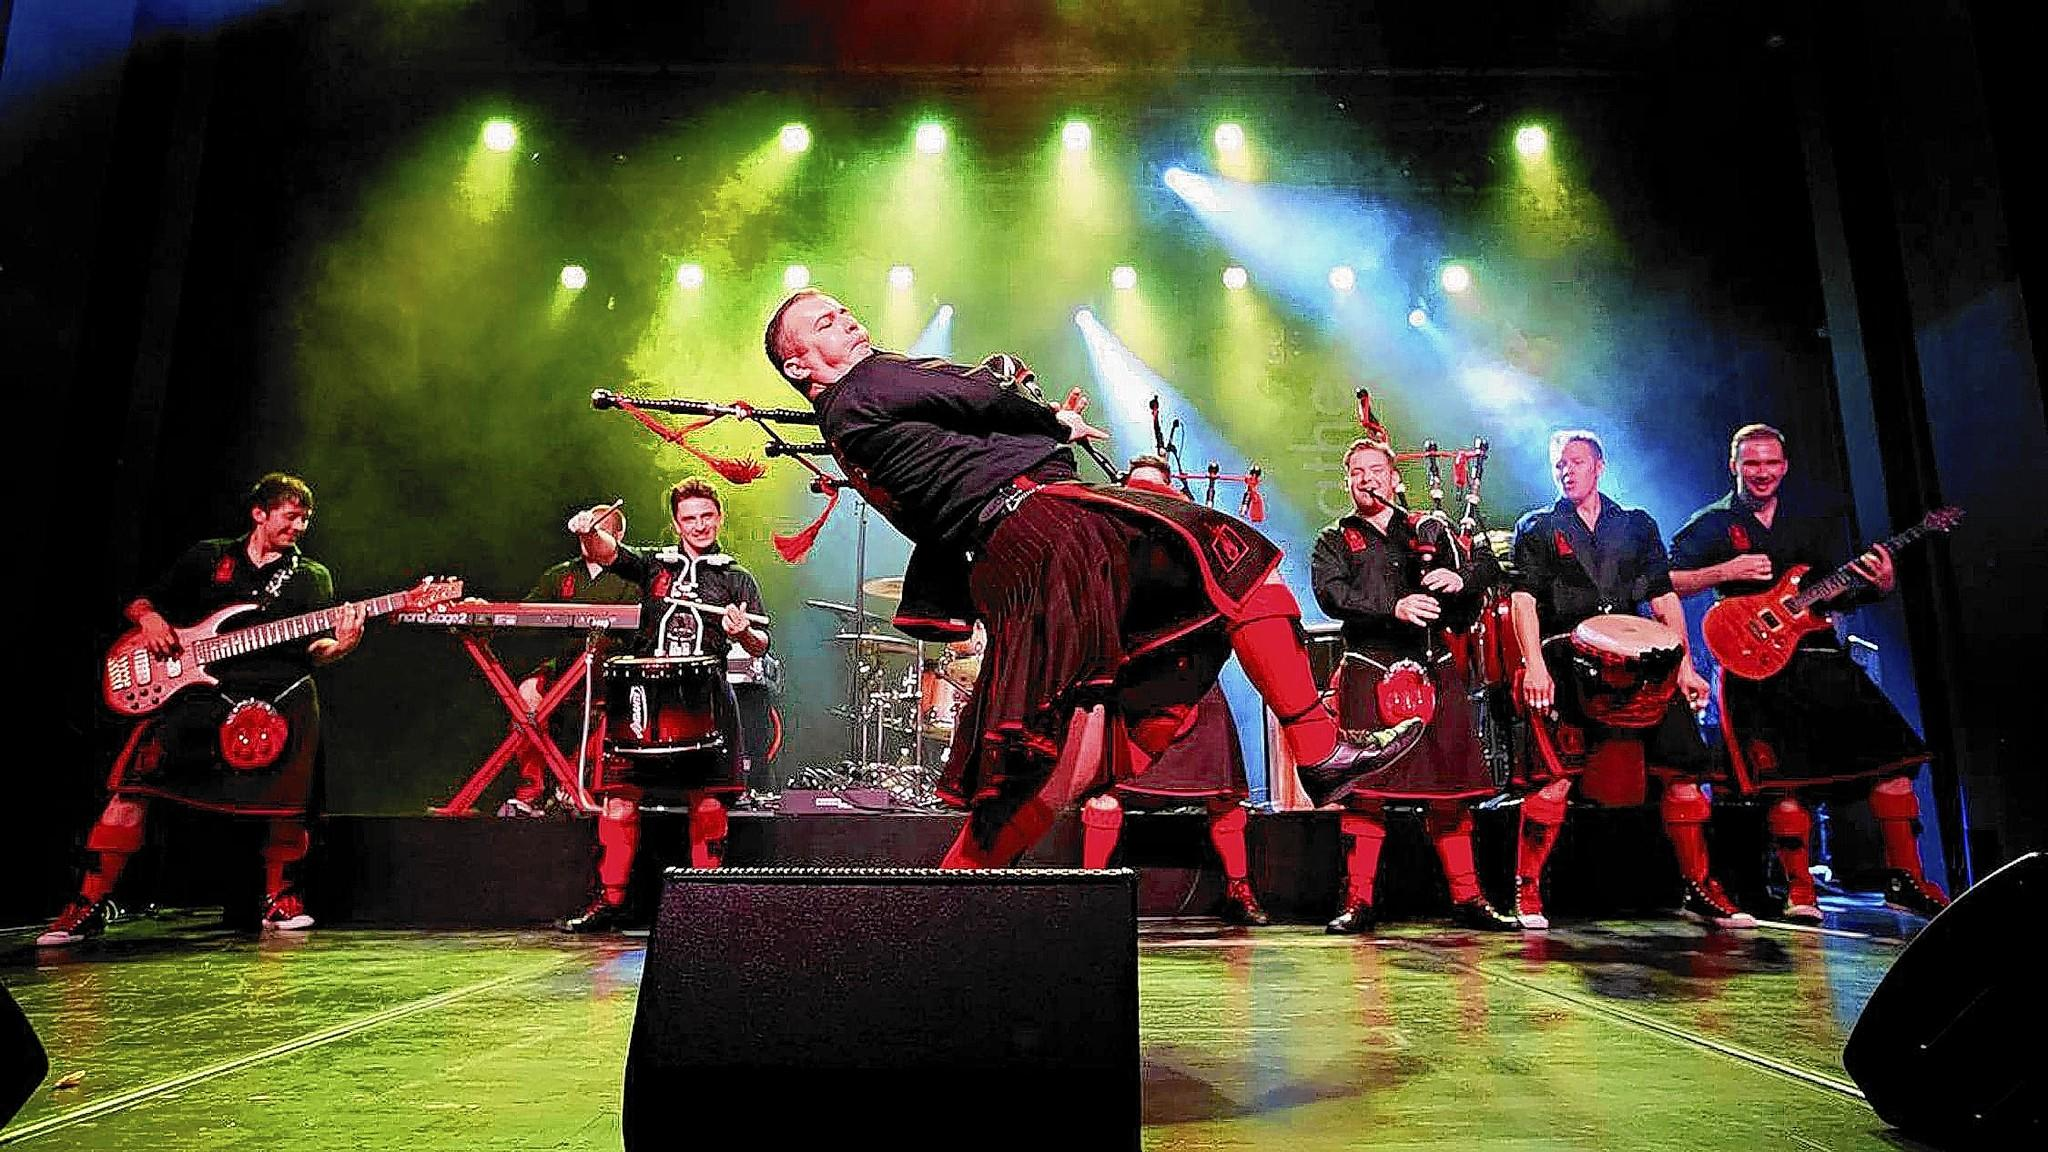 The Red Hot Chilli Pipers, with director Kevin MacDonald (center), will perform at the State Theatre, Easton, on Feb. 20.